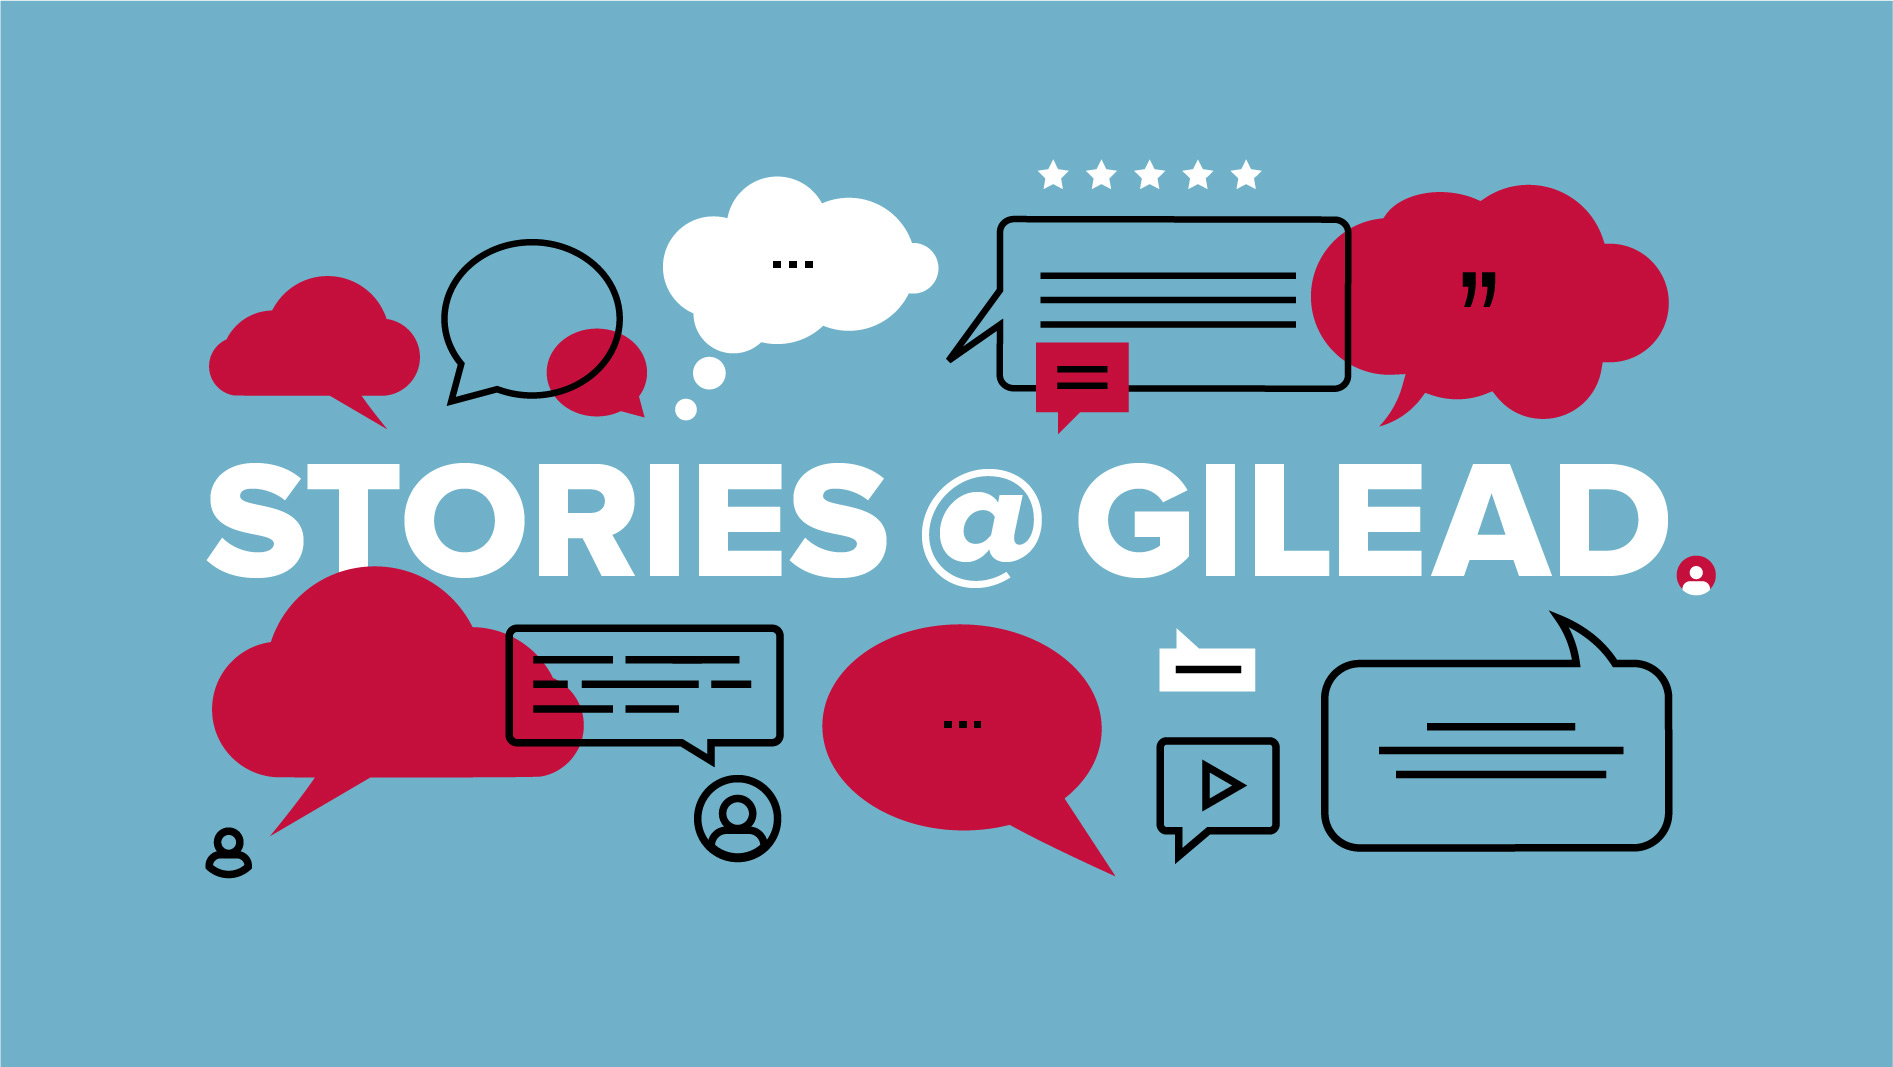 Stories @ Gilead